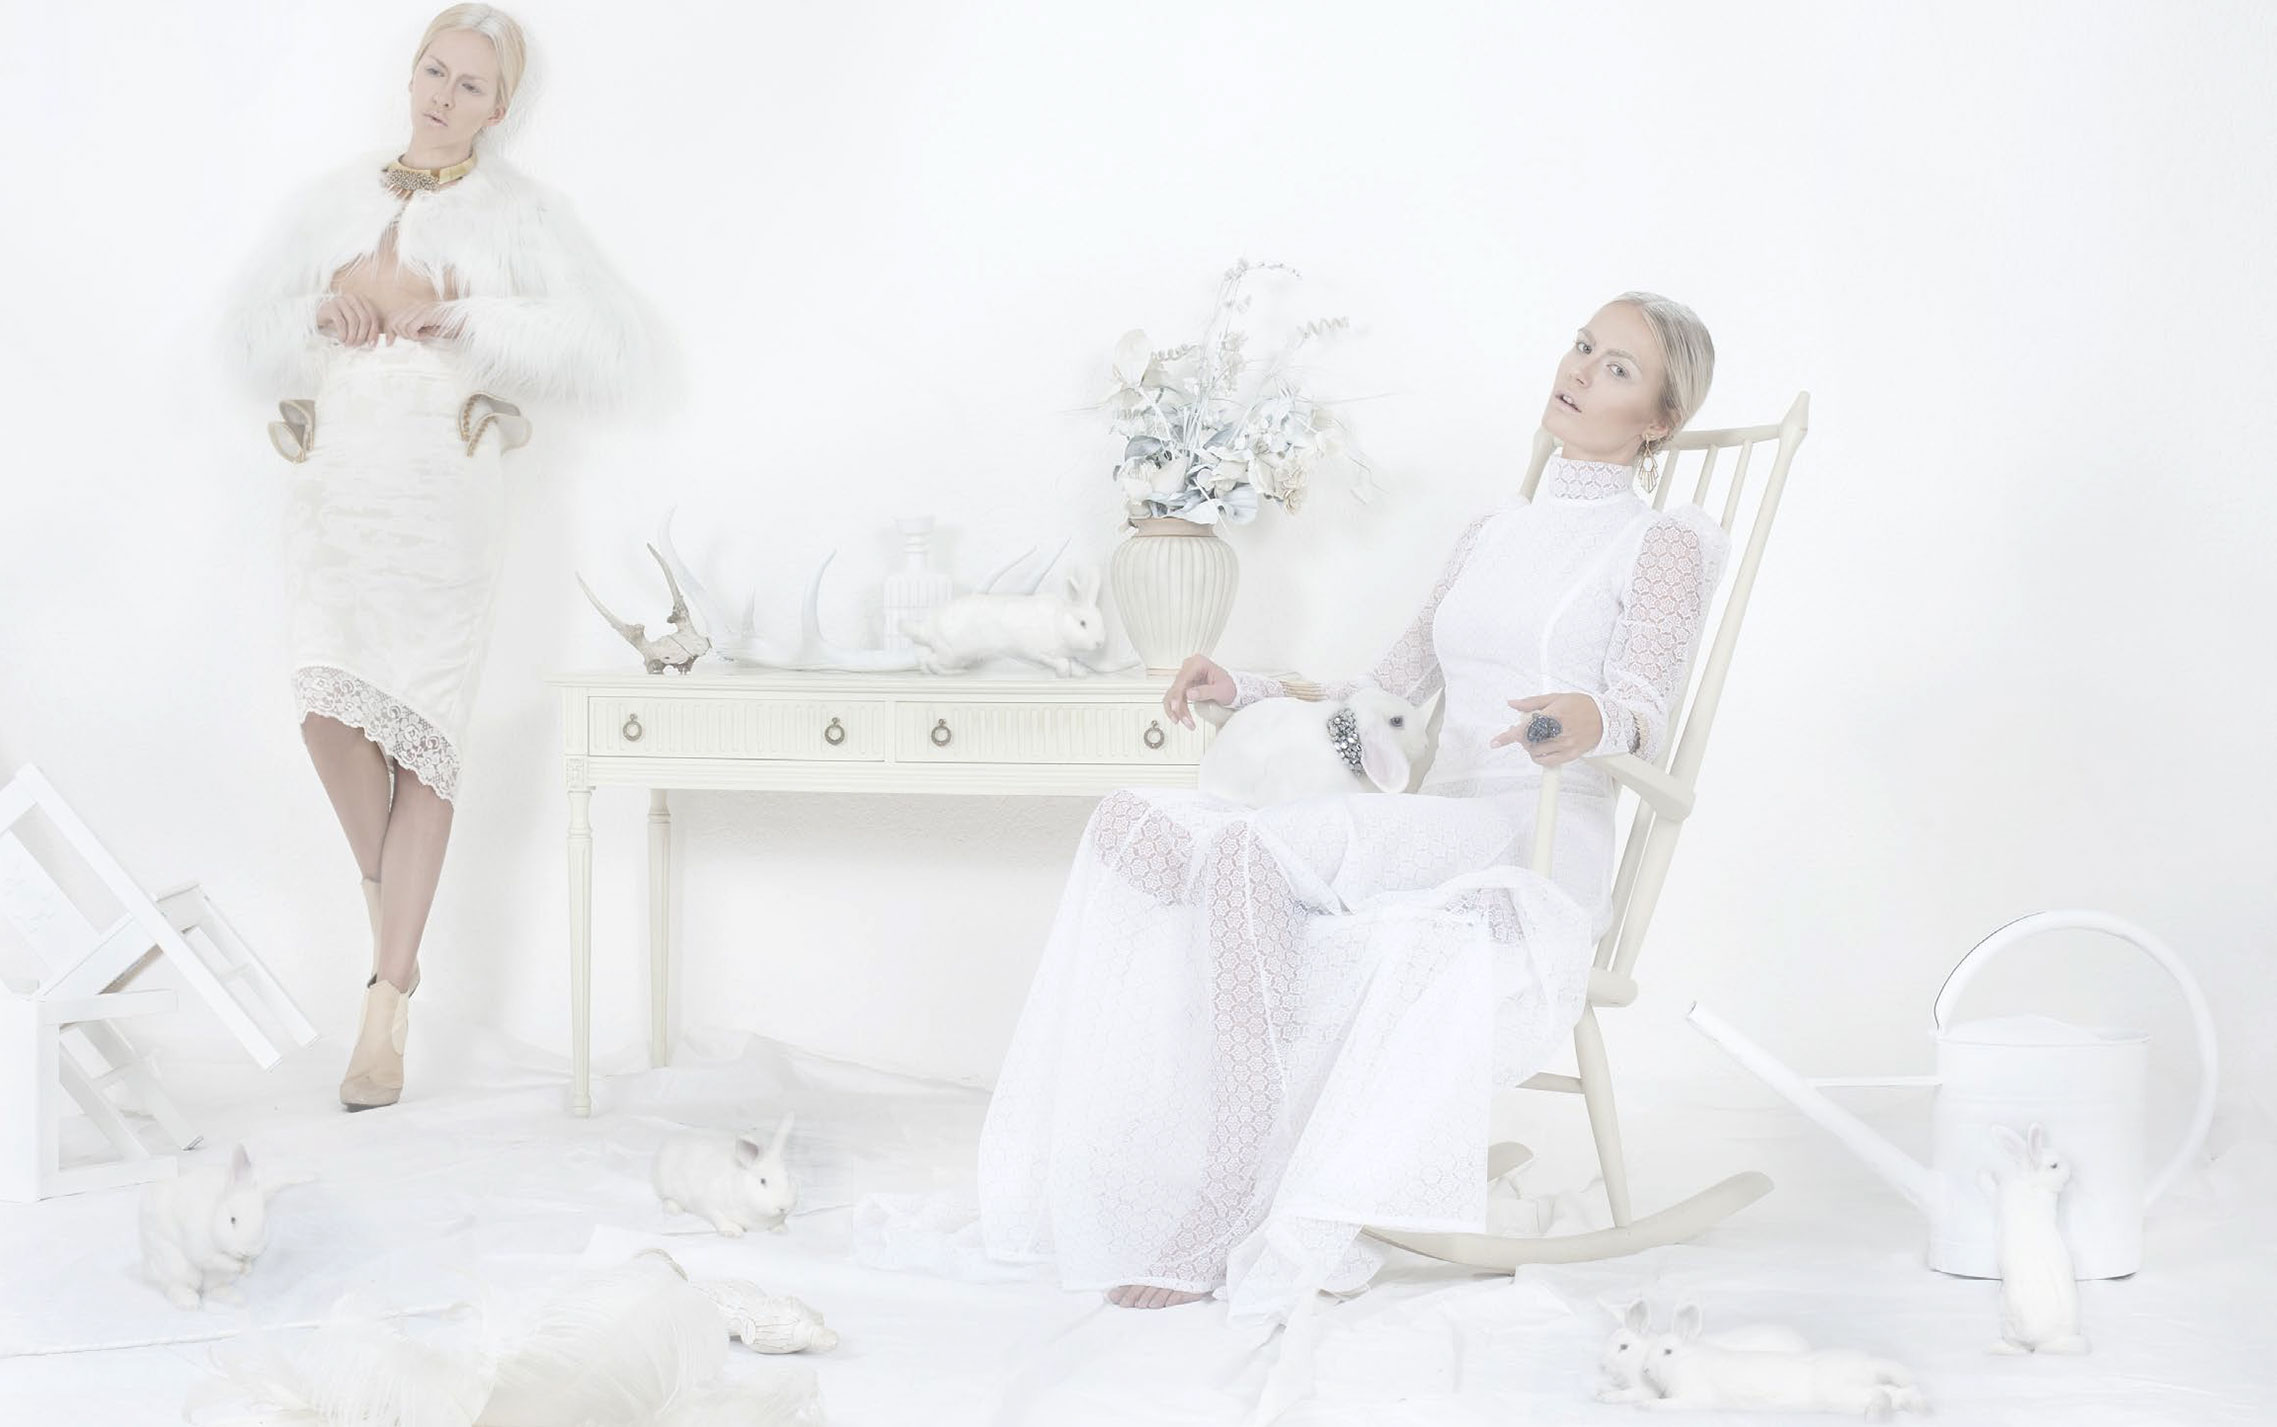 Sarah Dietrich and Marijana Jurcevic by Martin Hohne / The Animal Aspect of White Decadence